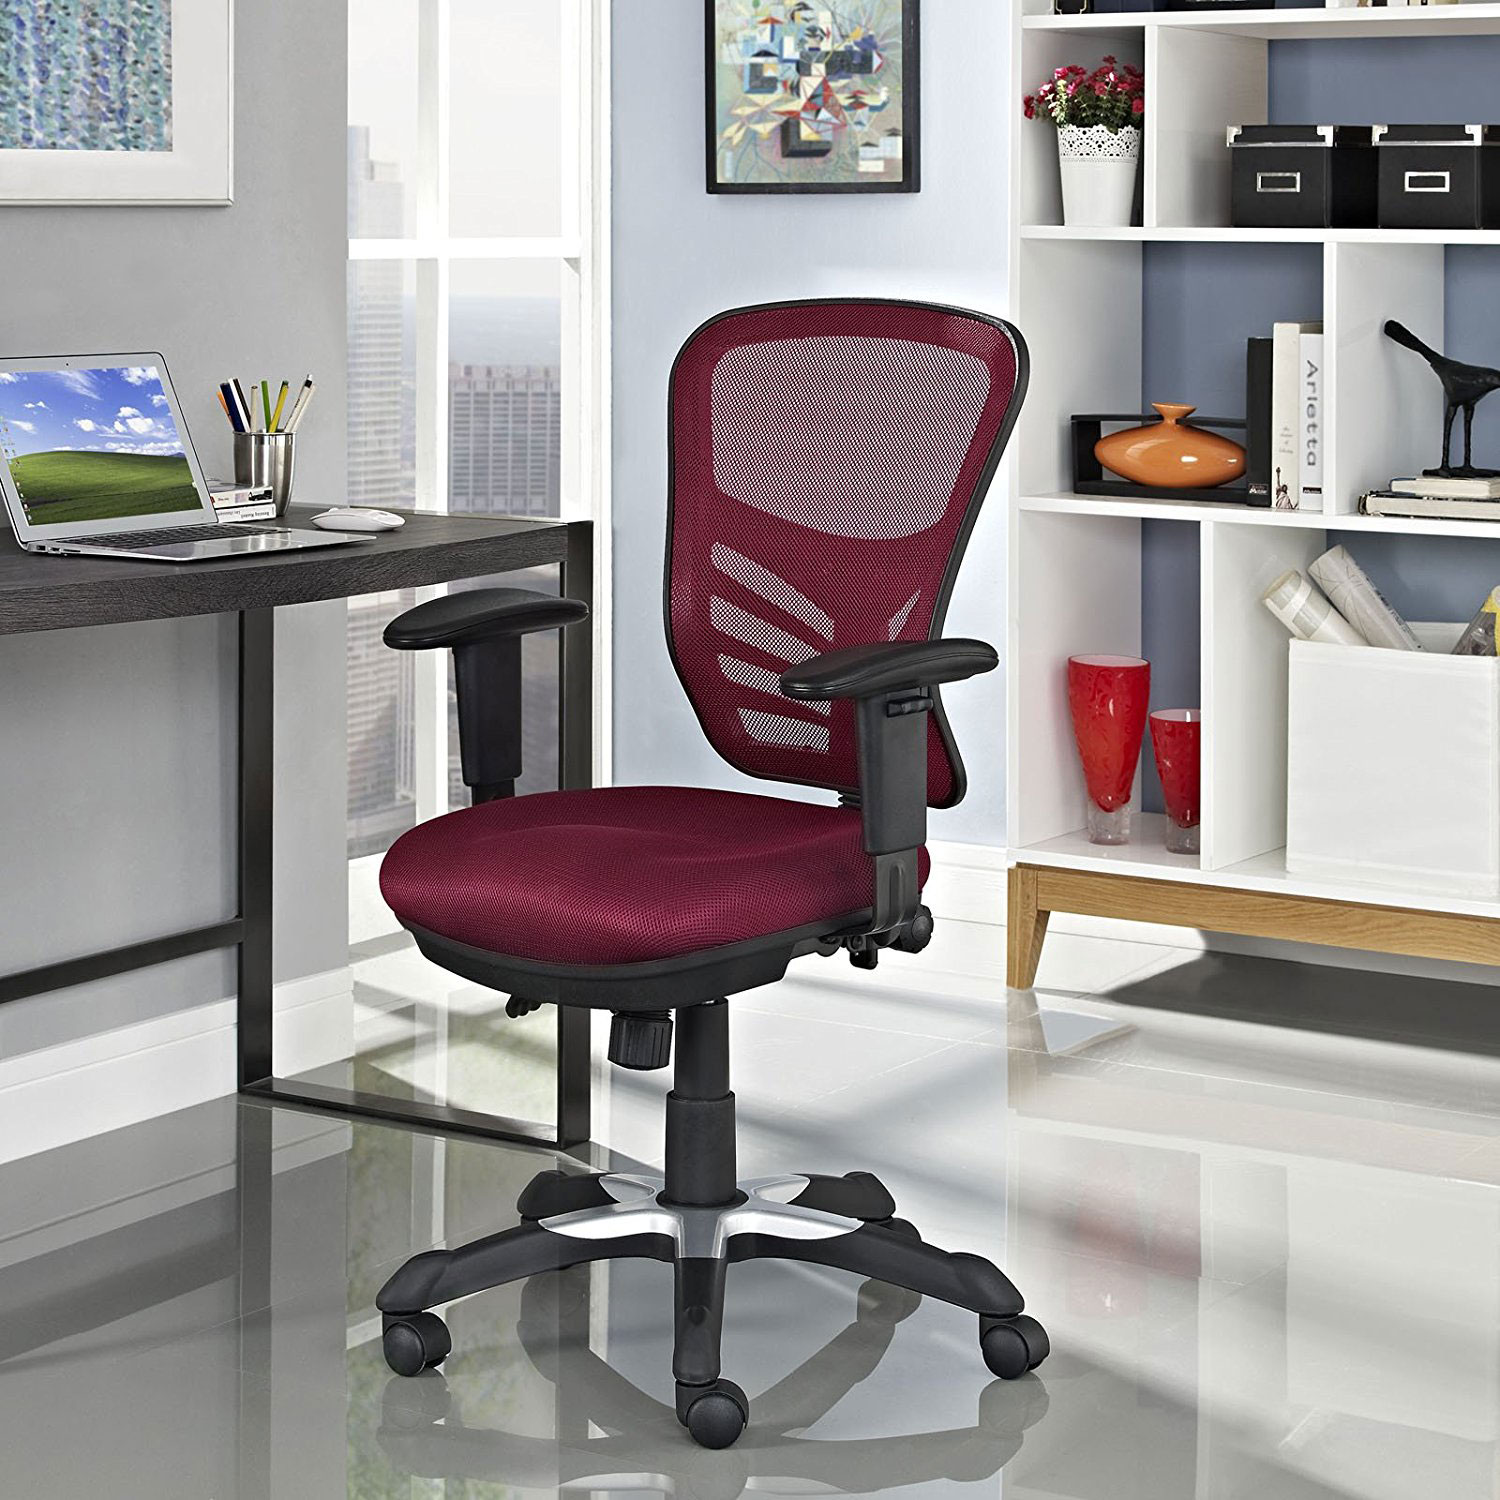 Modway Articulate fice Chair Review Breathable Mesh Back